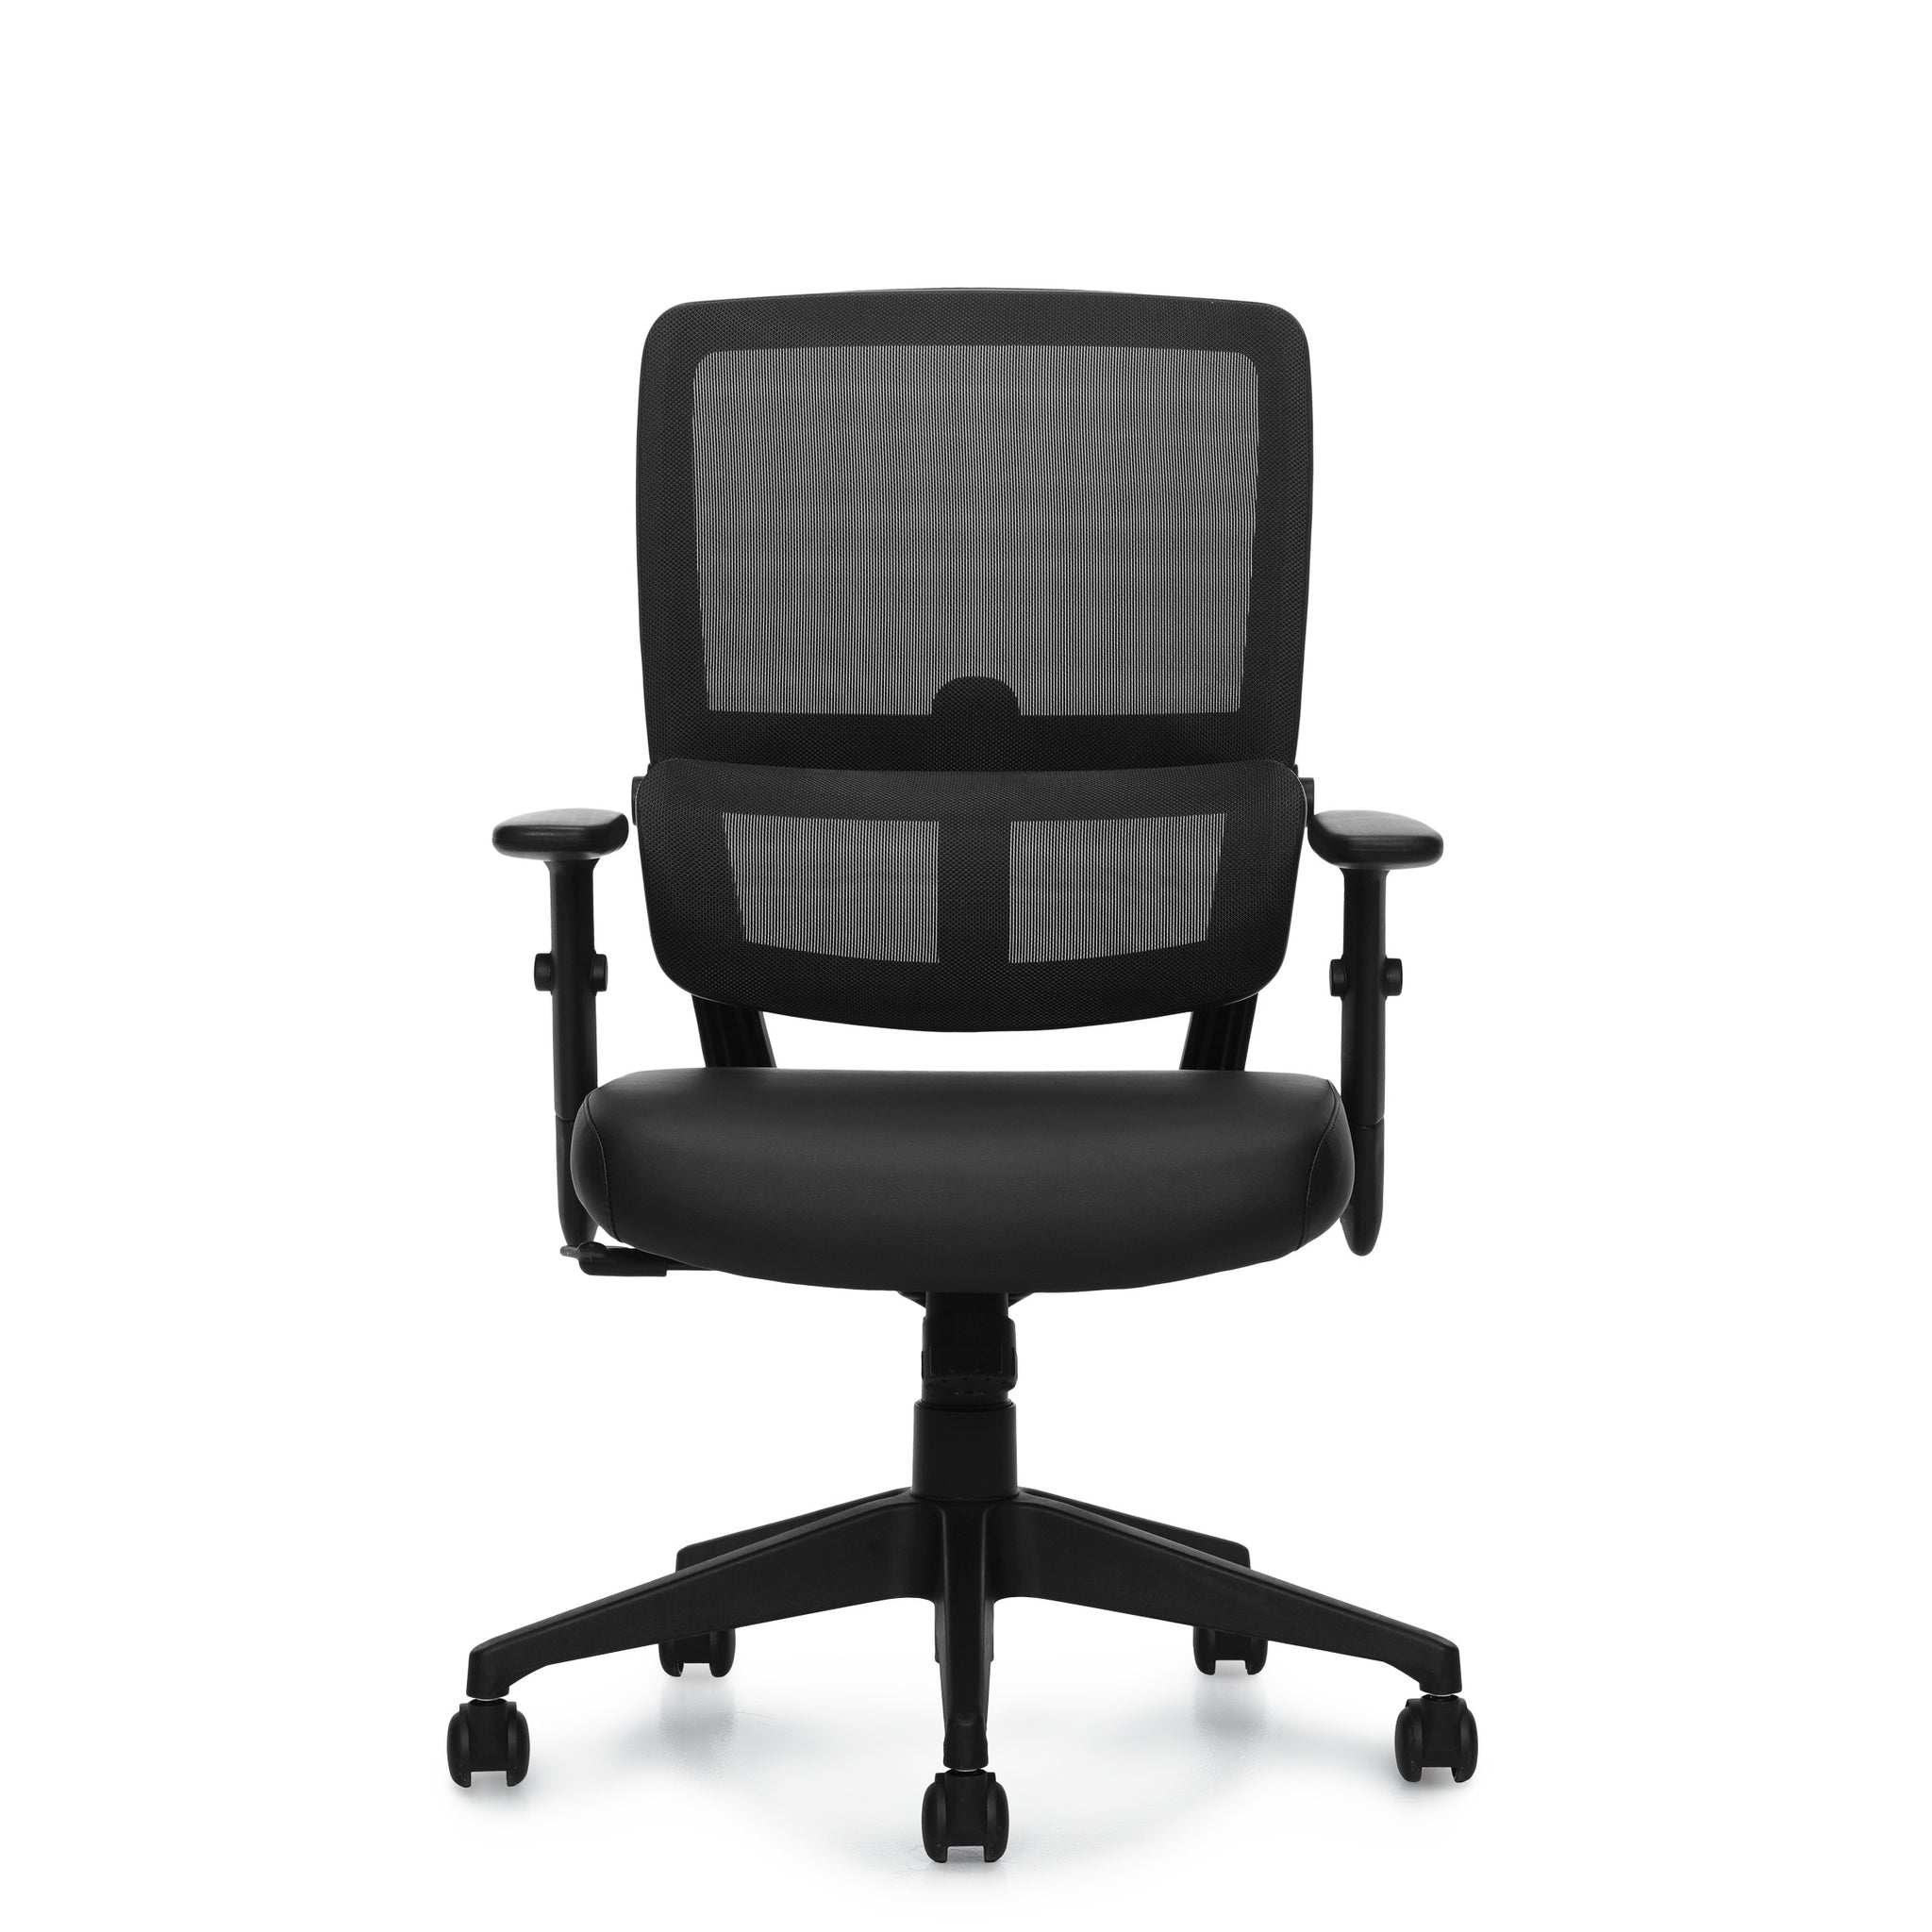 12110B Mesh Back Luxhide Tilter Chair